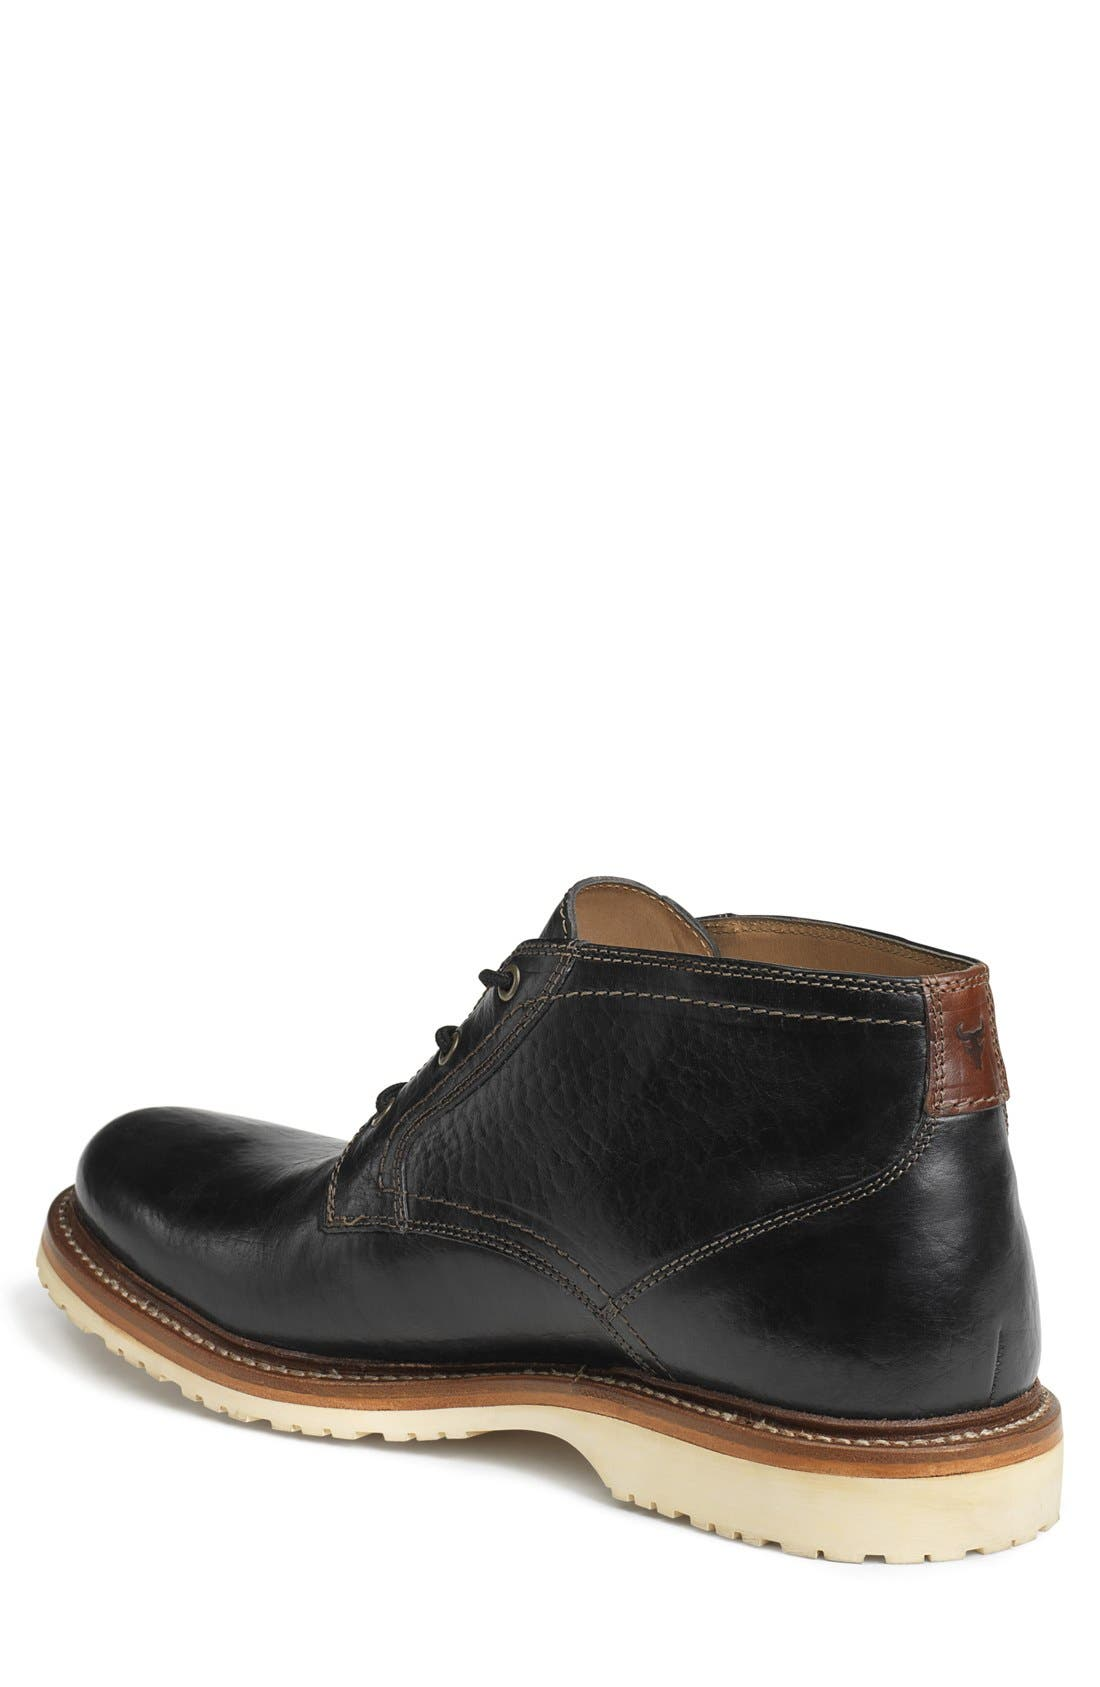 Arlington Chukka Boot,                             Alternate thumbnail 2, color,                             Black